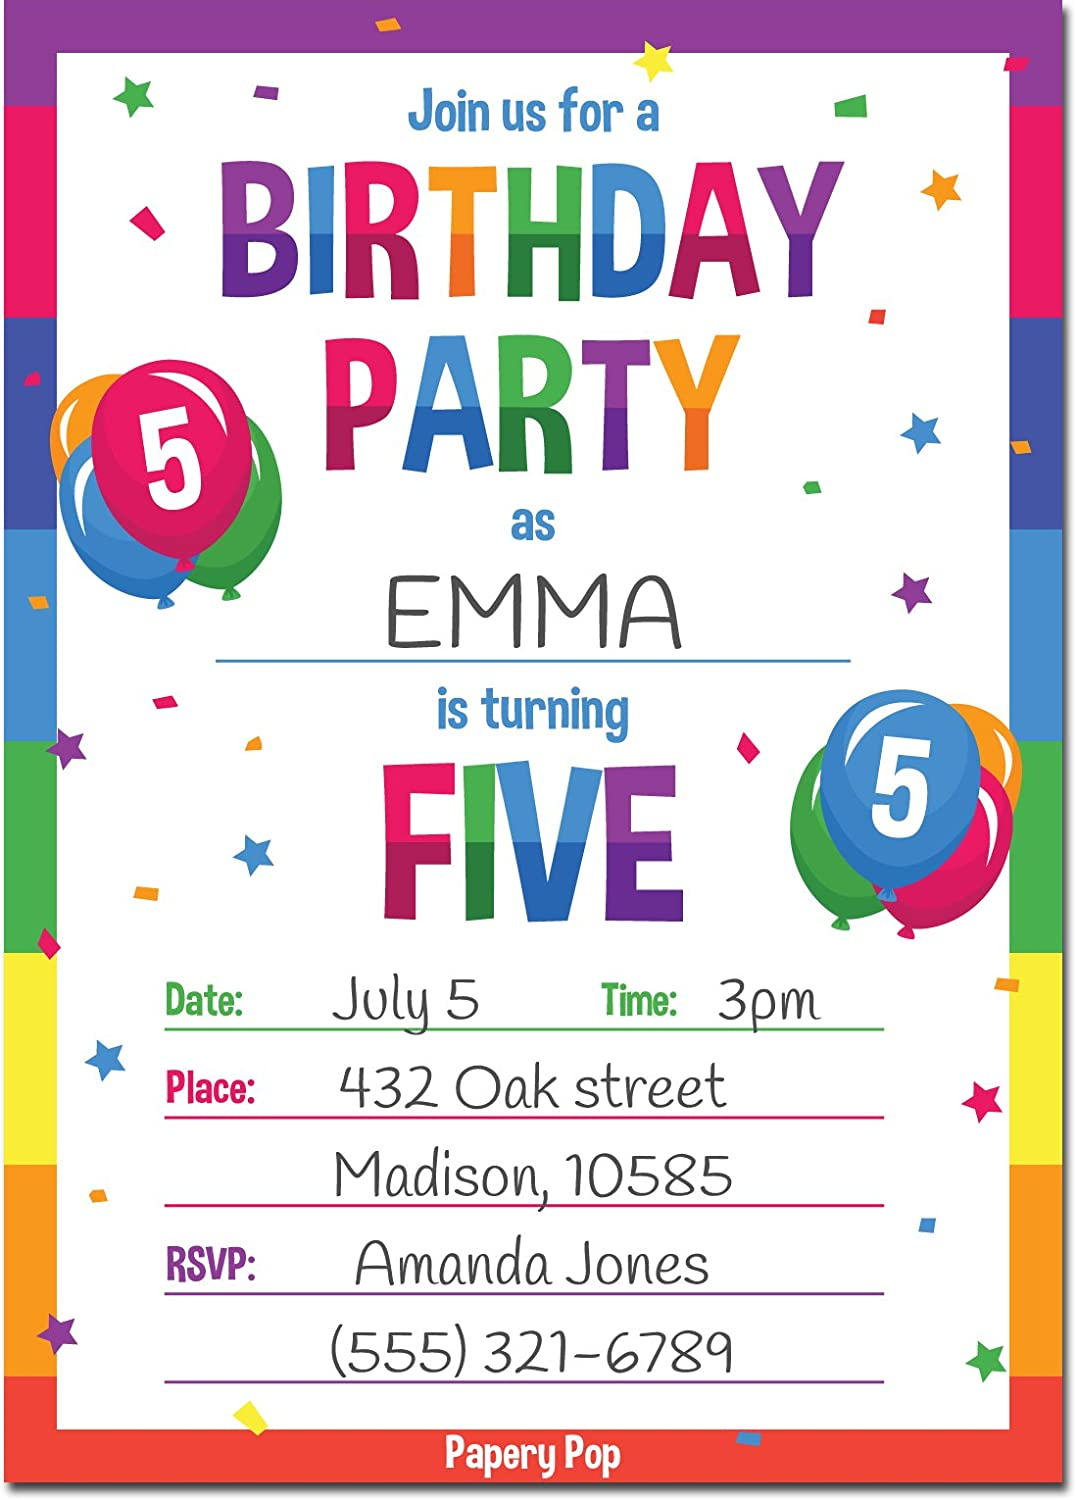 Amazon.com: 5th Birthday Party Invitations with Envelopes (15 Count ...